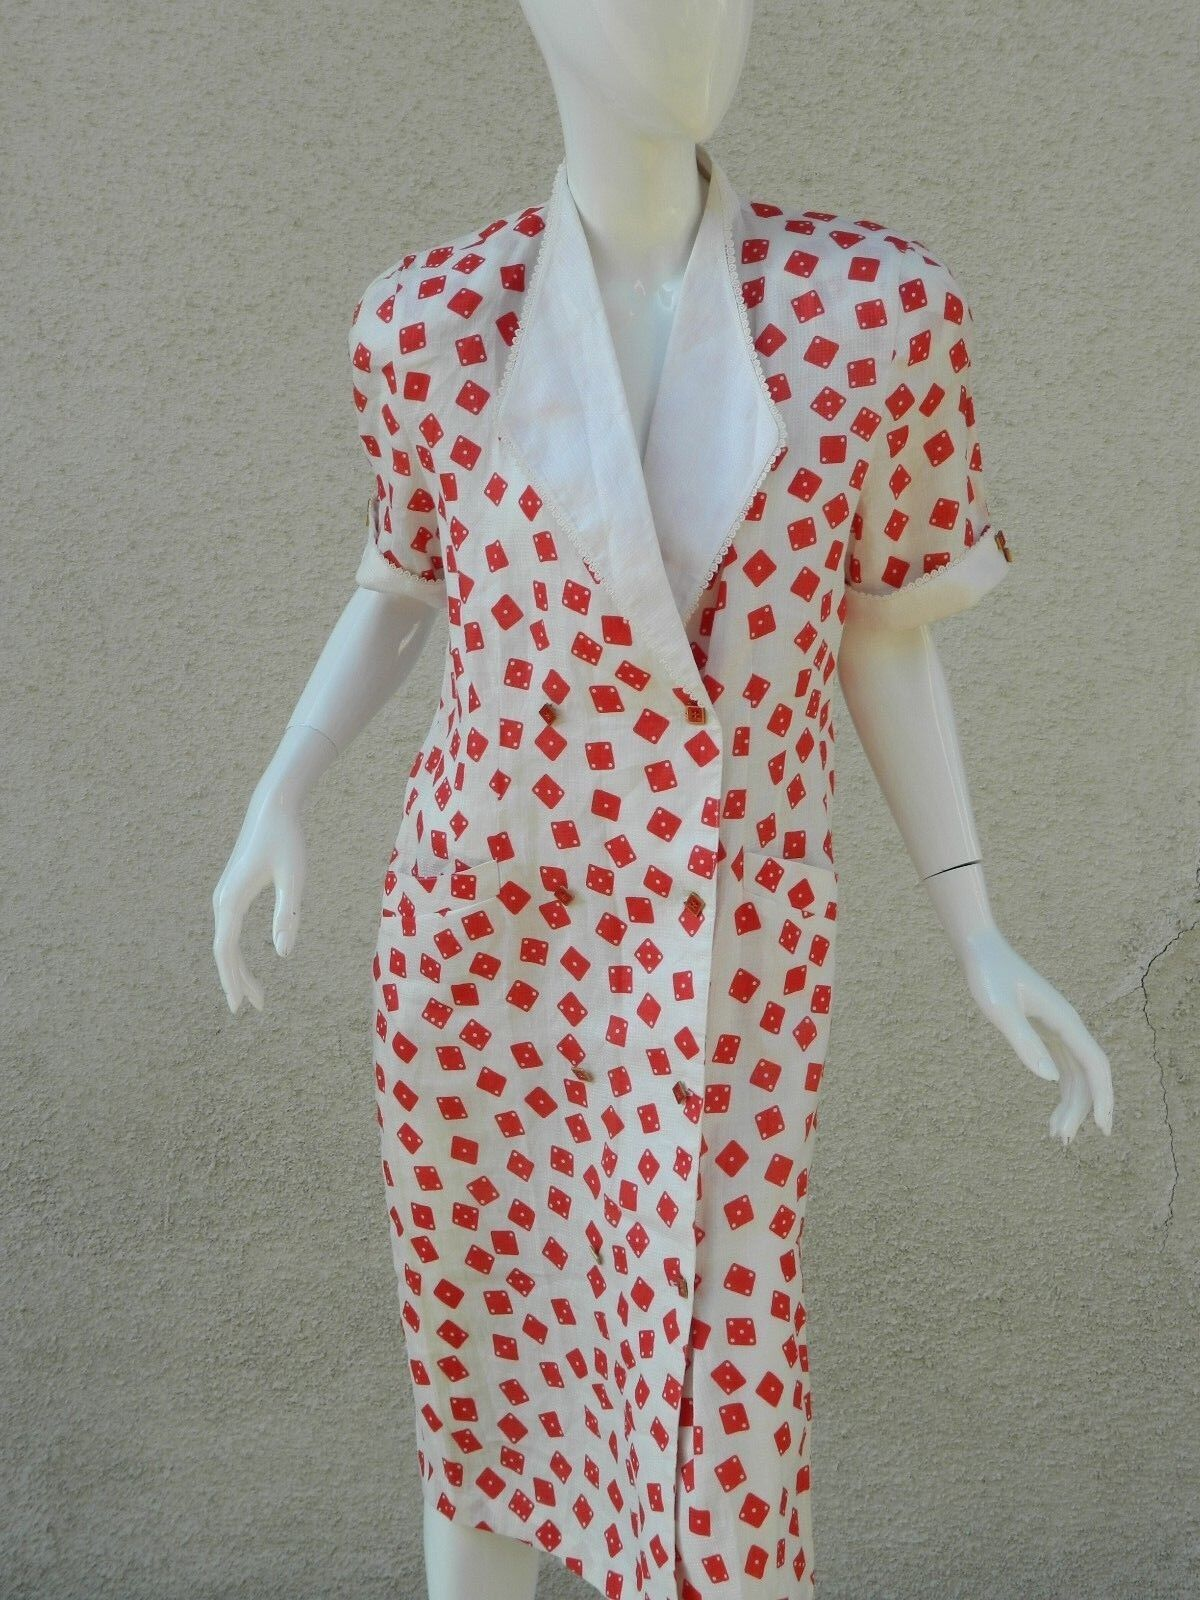 Vintage Catch Fire Dress Domino's Print Red and White 1980s Sz M L